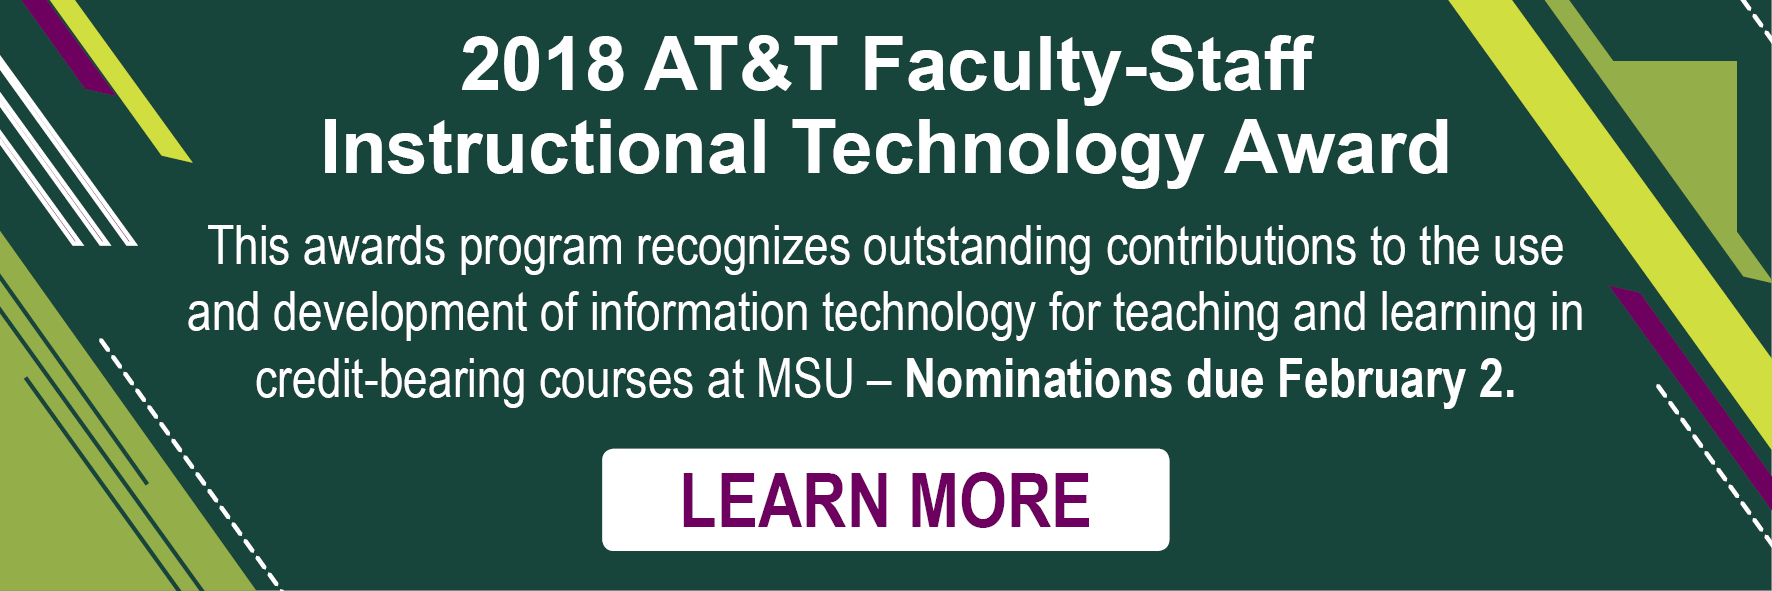 AT & T Instructional Technology Award Nominations